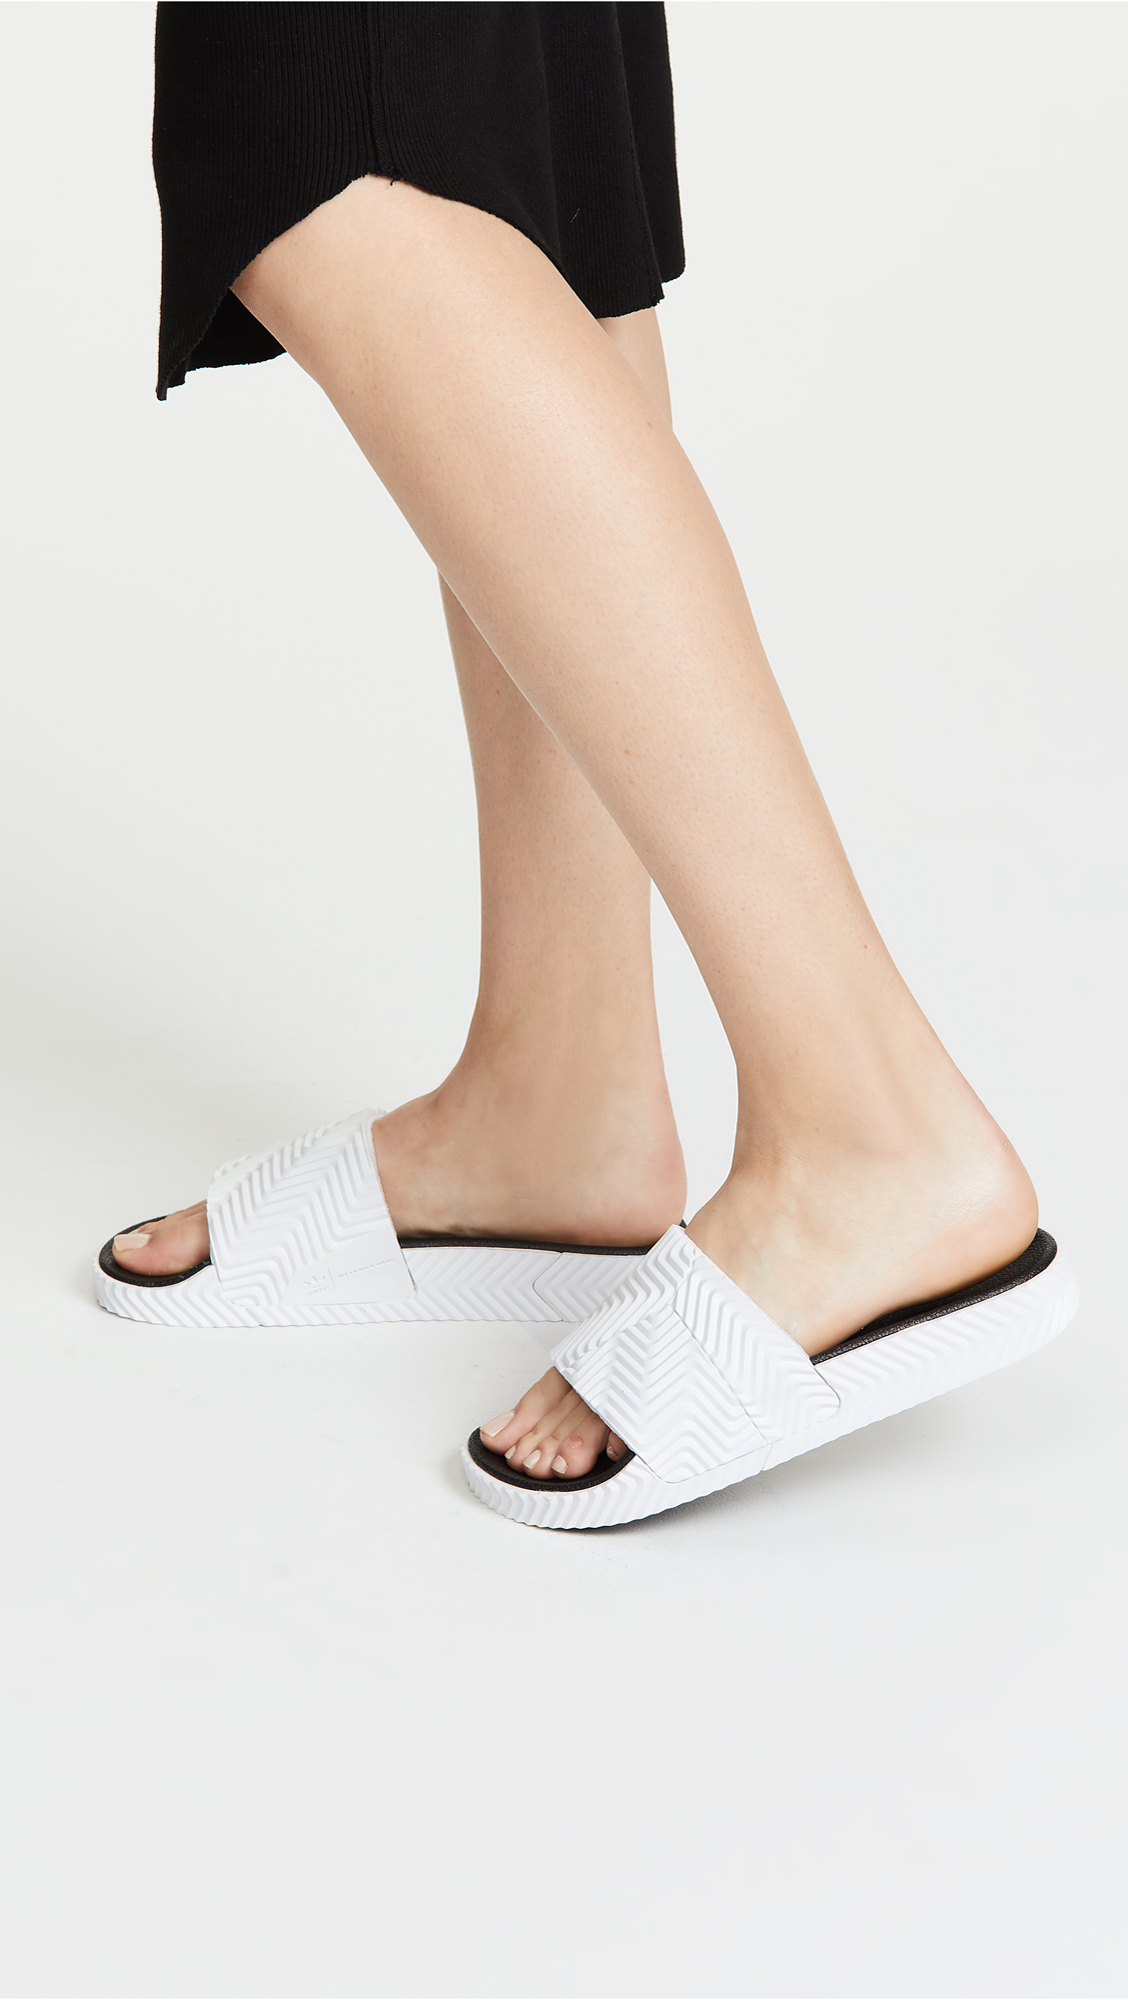 sports shoes 84f8c 95c12 adidas Originals by Alexander Wang AW Adilette Slides  SHOPB